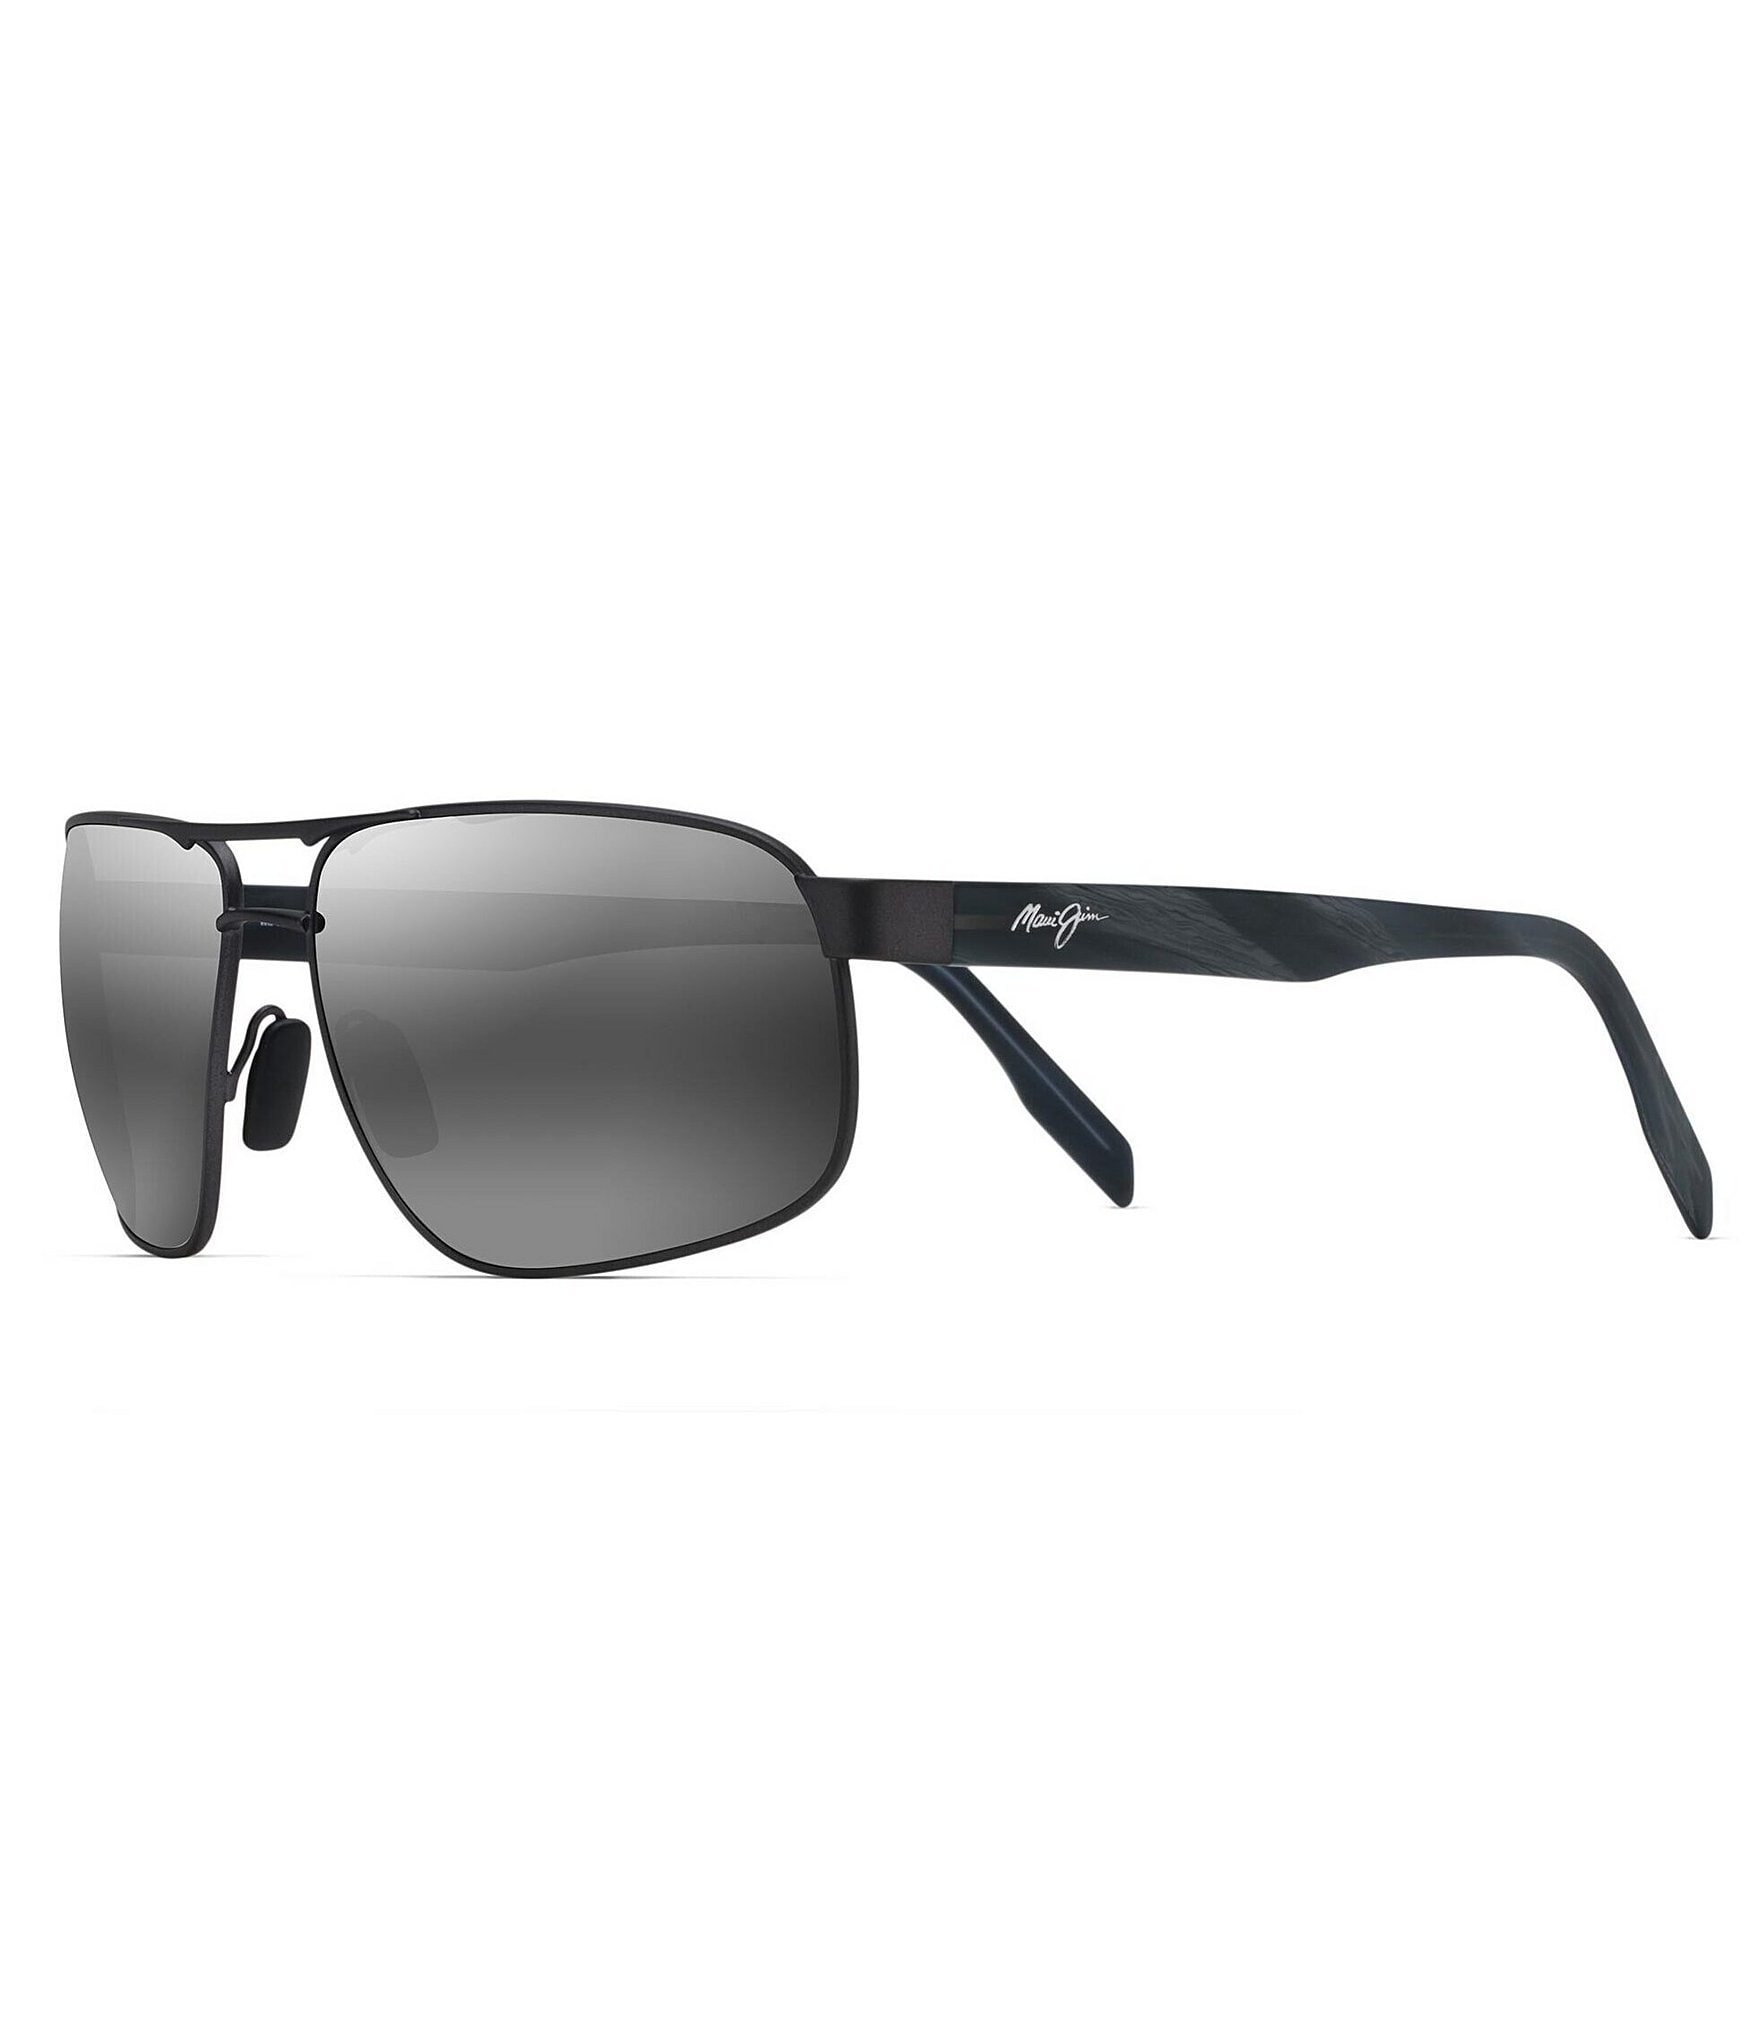 76b56c77b7 Maui Jim Whitehaven Polarized Sunglasses